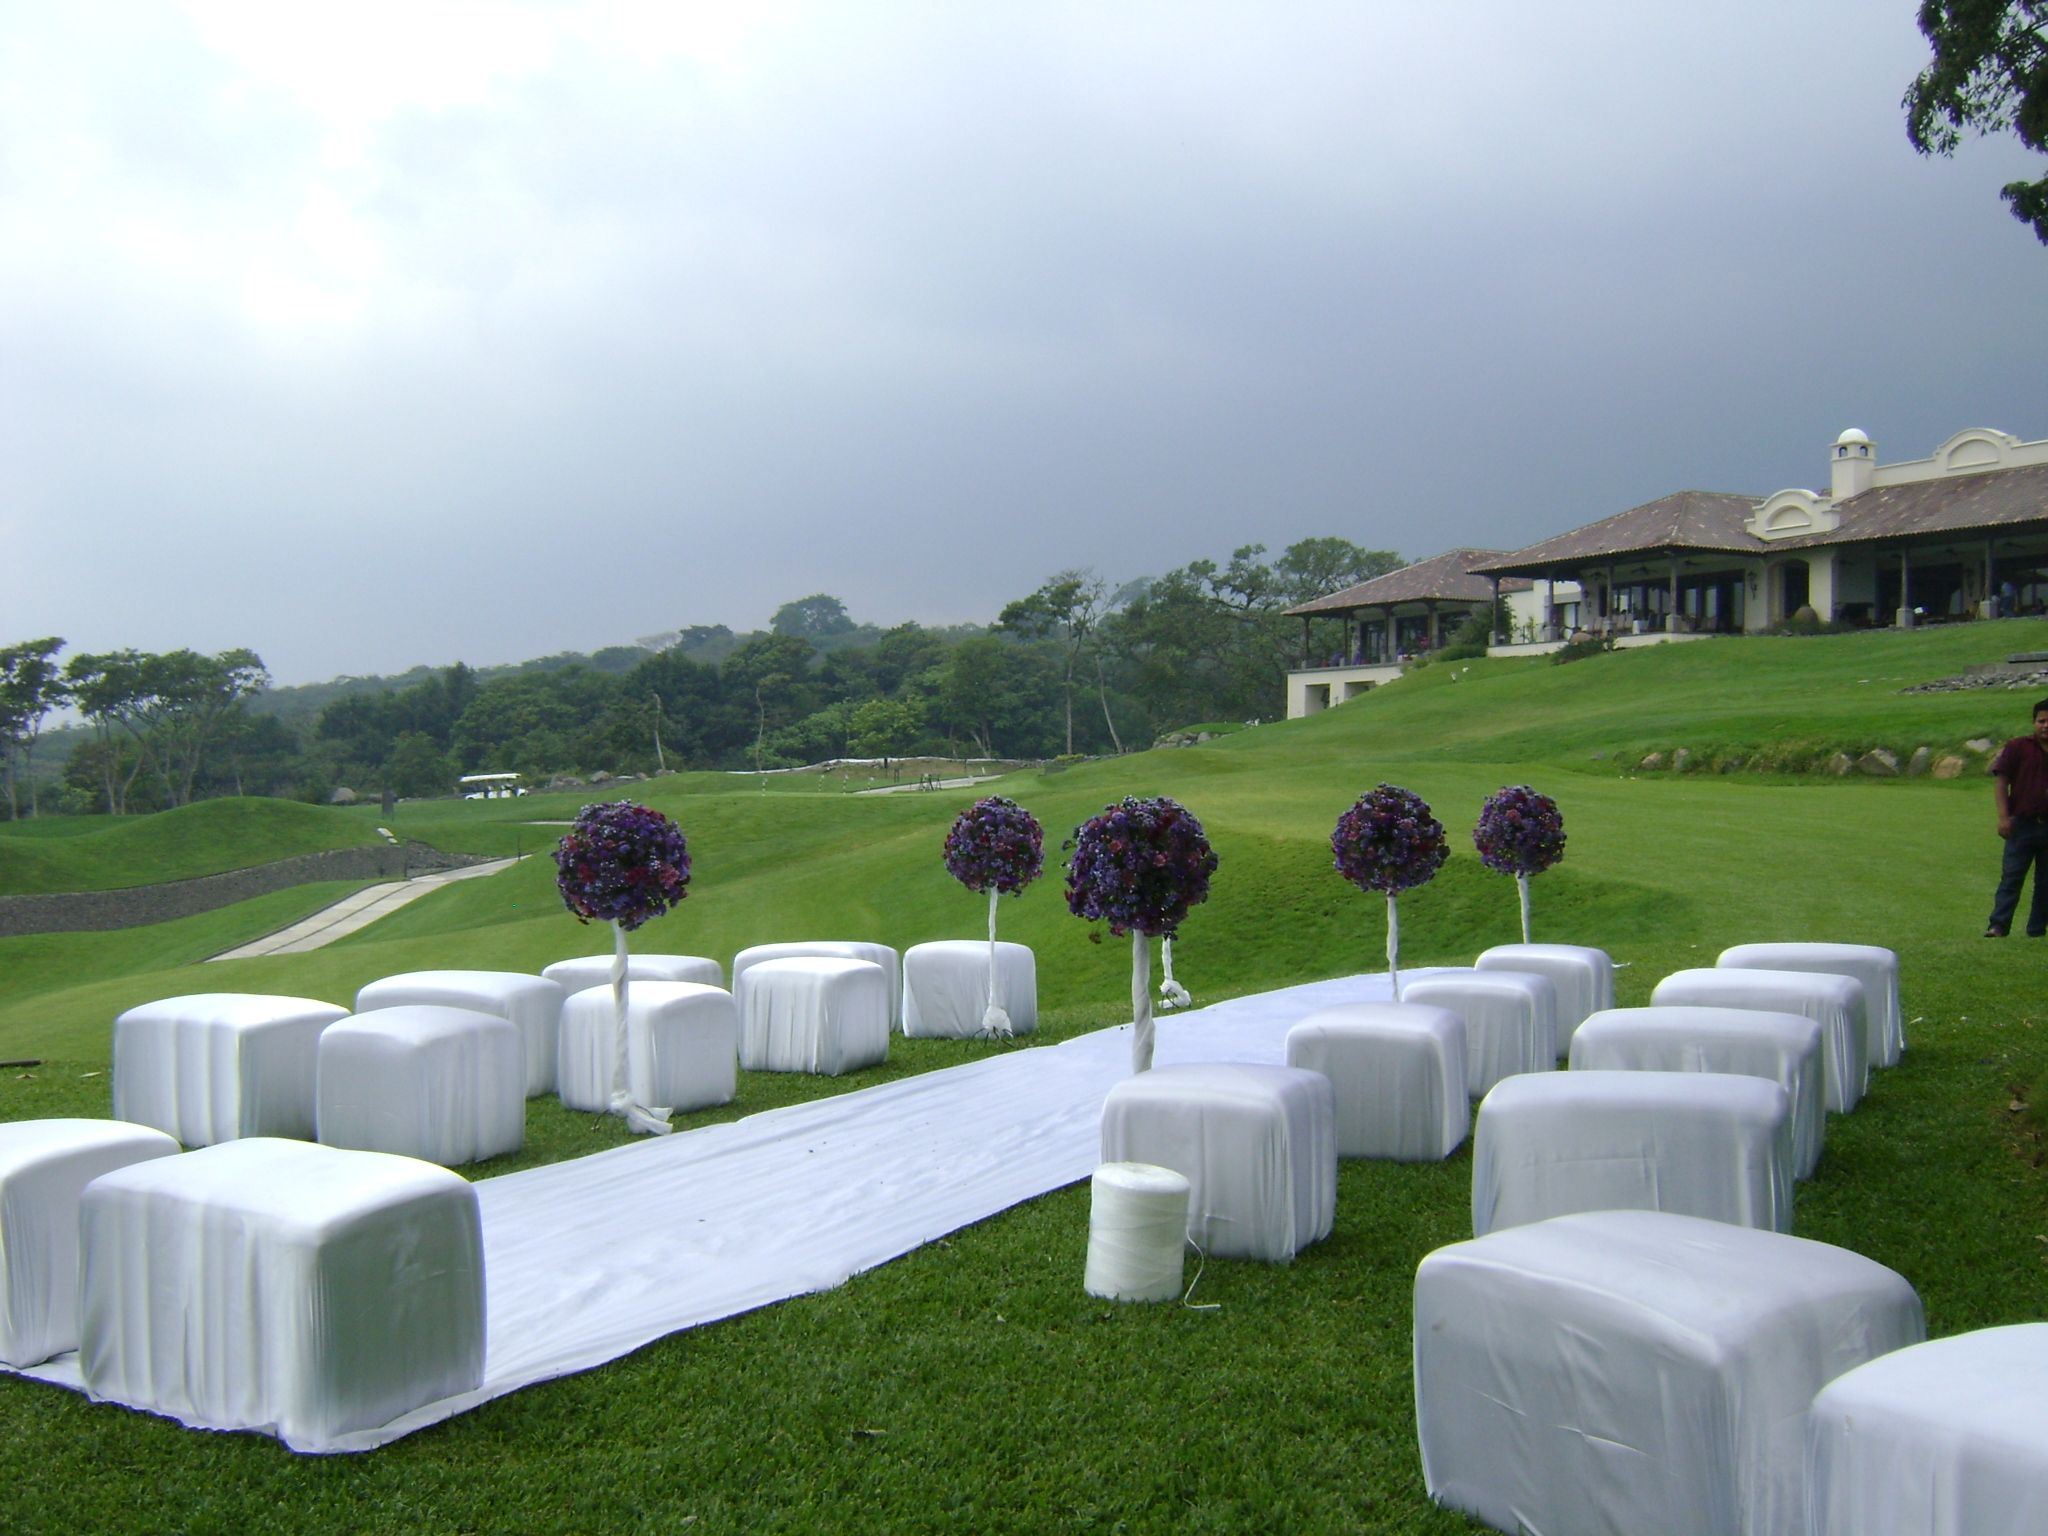 Ceremonia al aire libre con salas lounge! #OutdoorWeddings